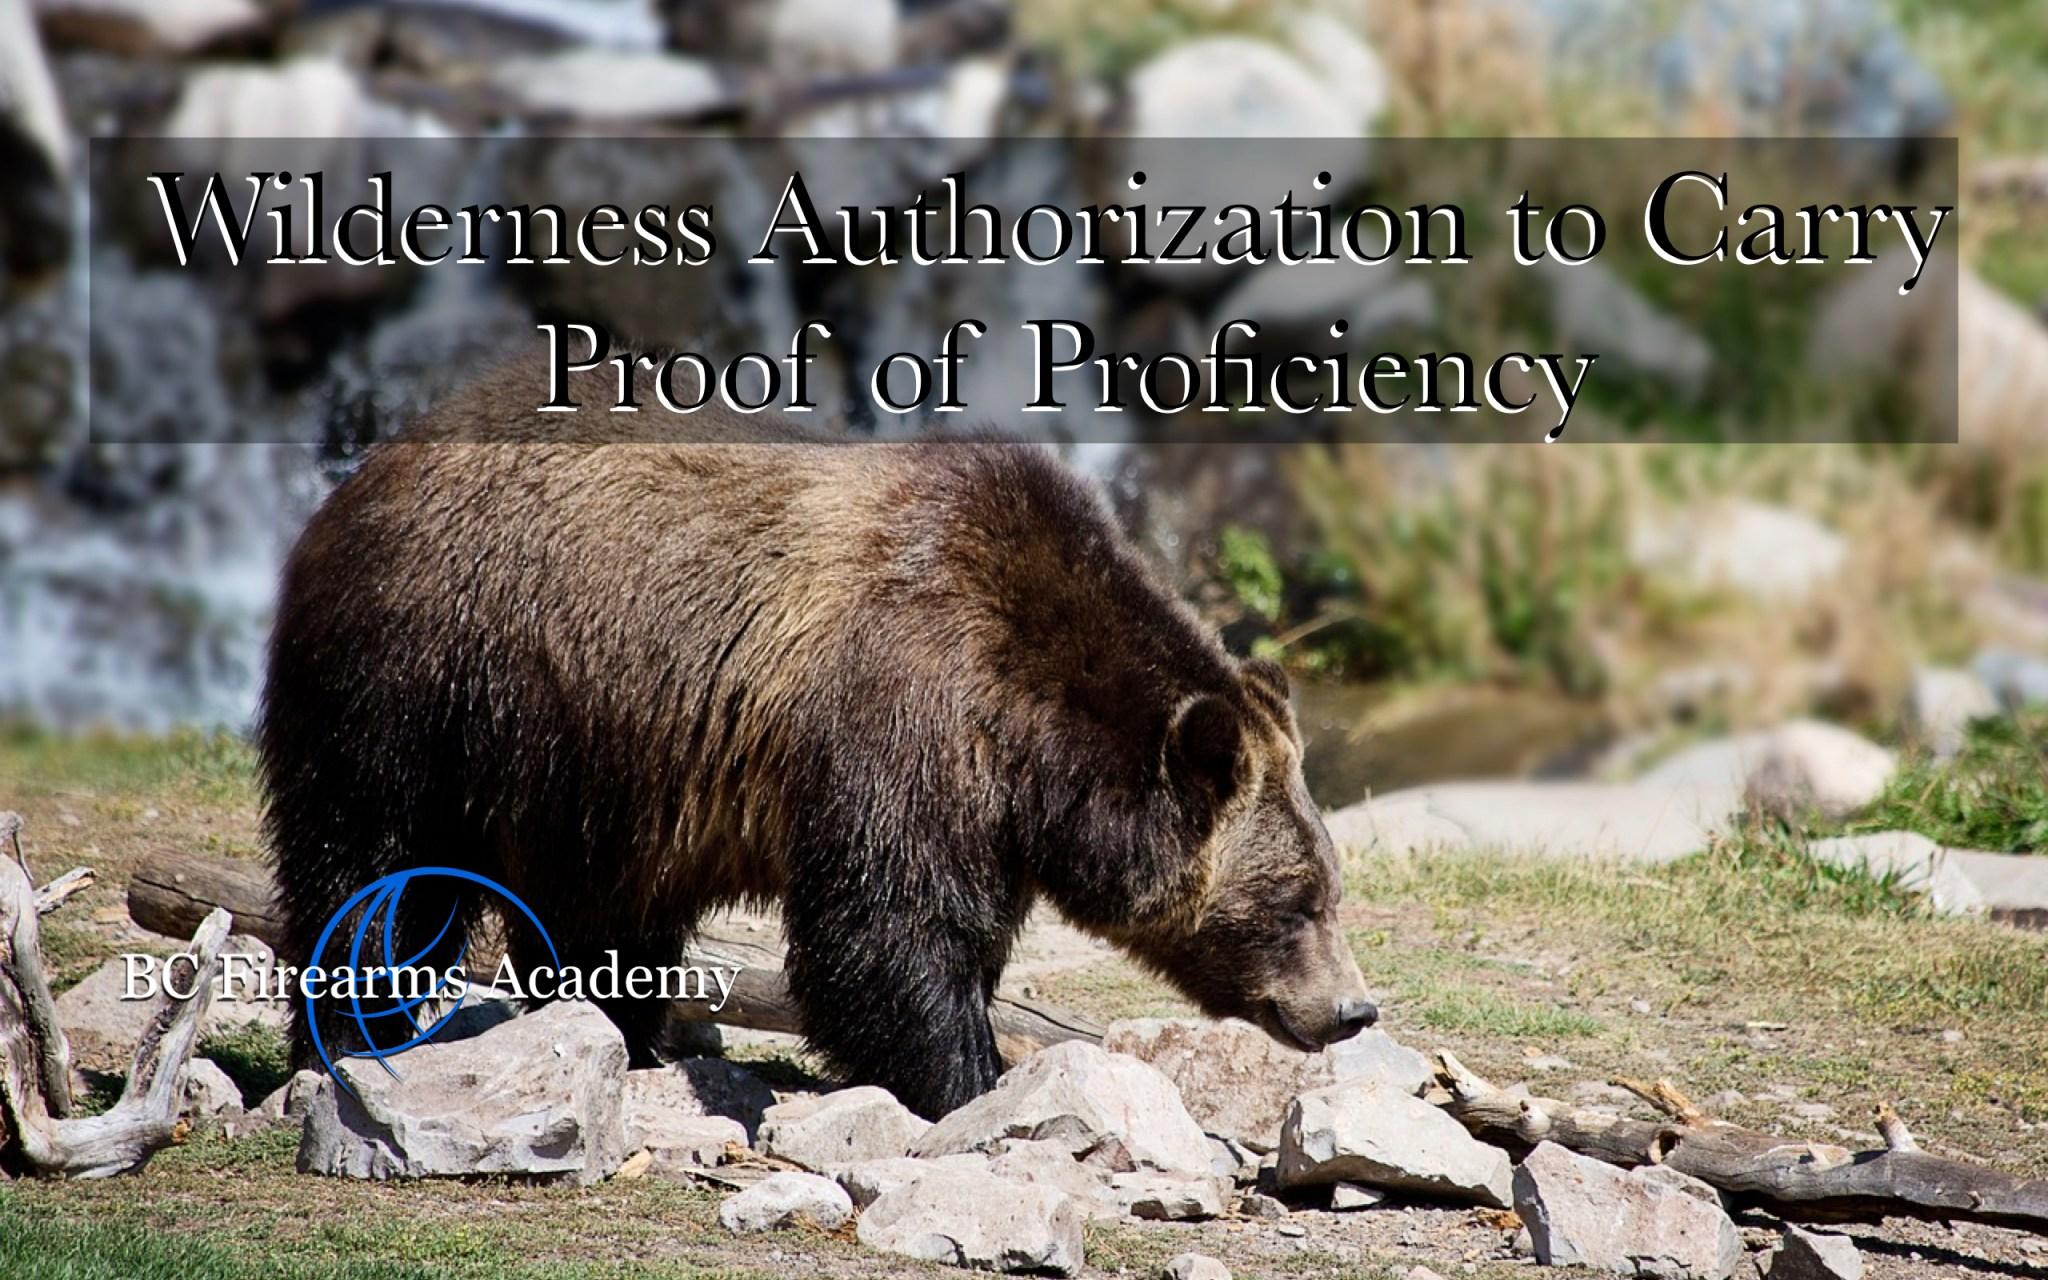 WATC – Wilderness Authorization to Carry Proof of Proficiency Jan 28